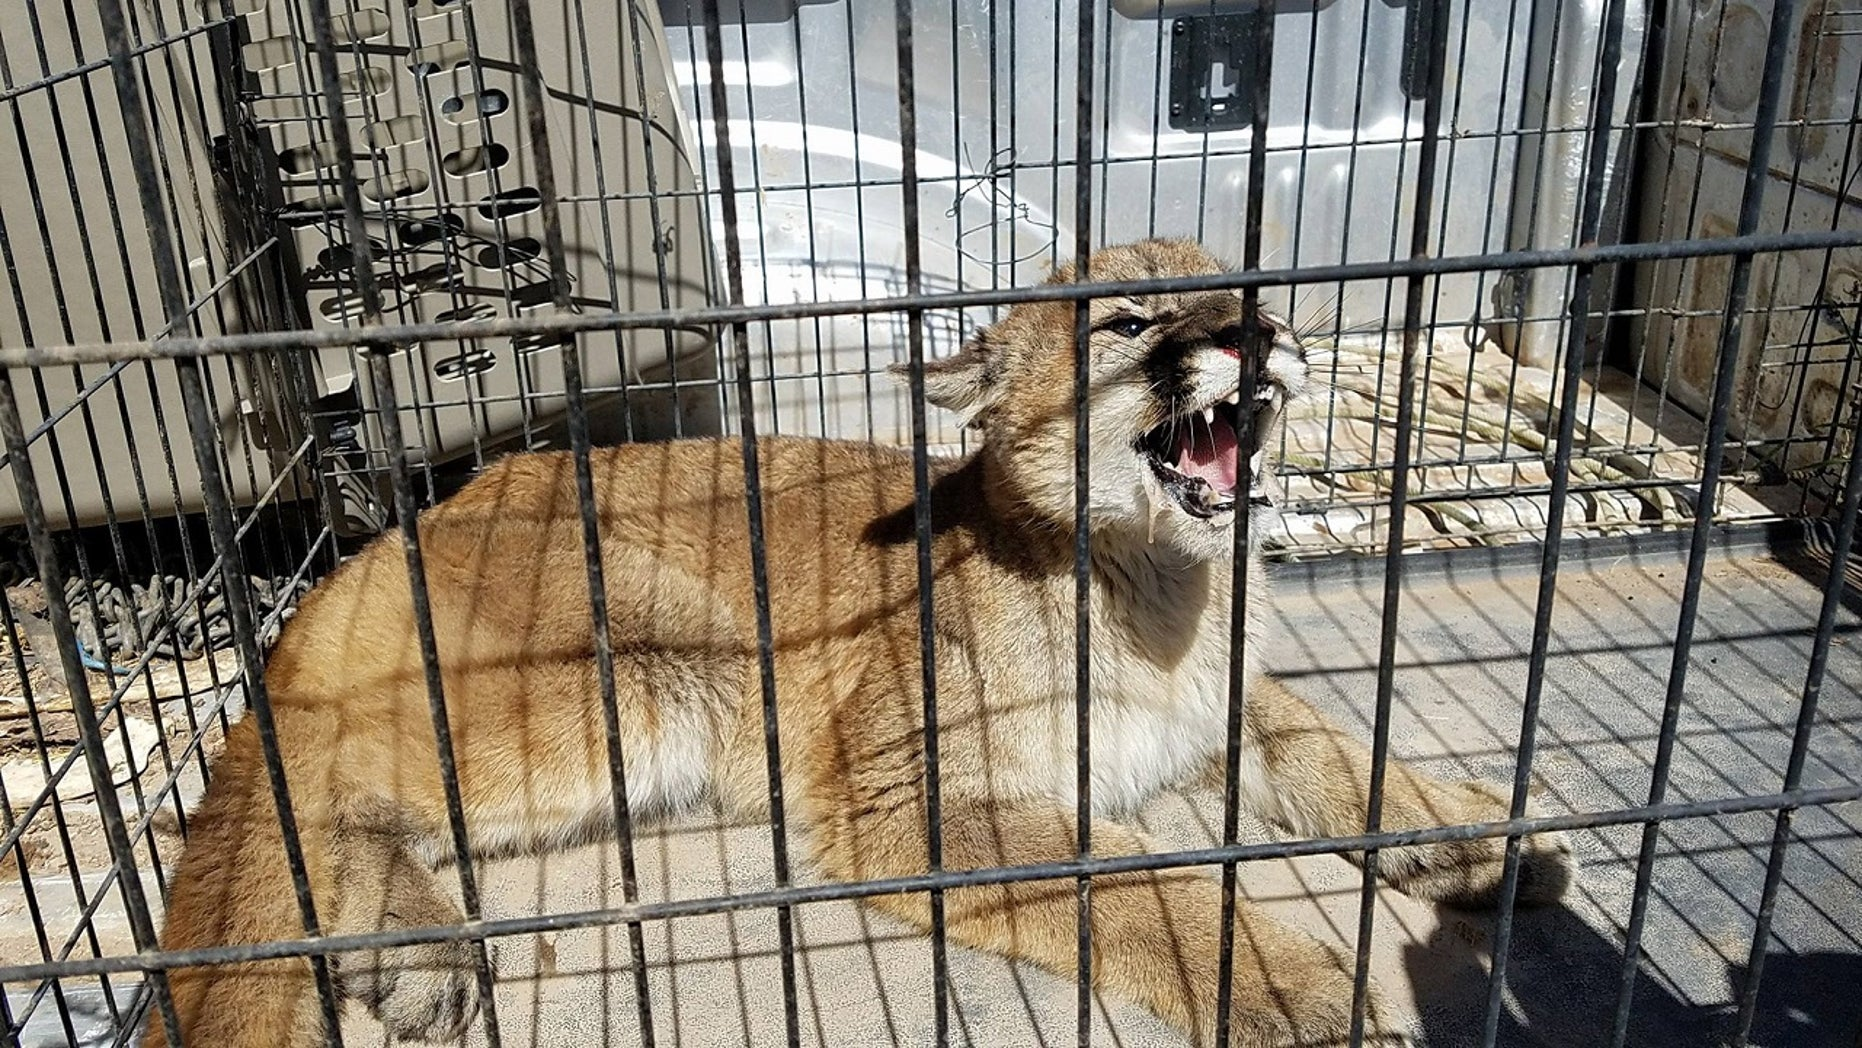 A mountain lion was apprehended Thursday in Fillmore City, Utah, according to a Facebook post from the Millard County Sheriff's Office.